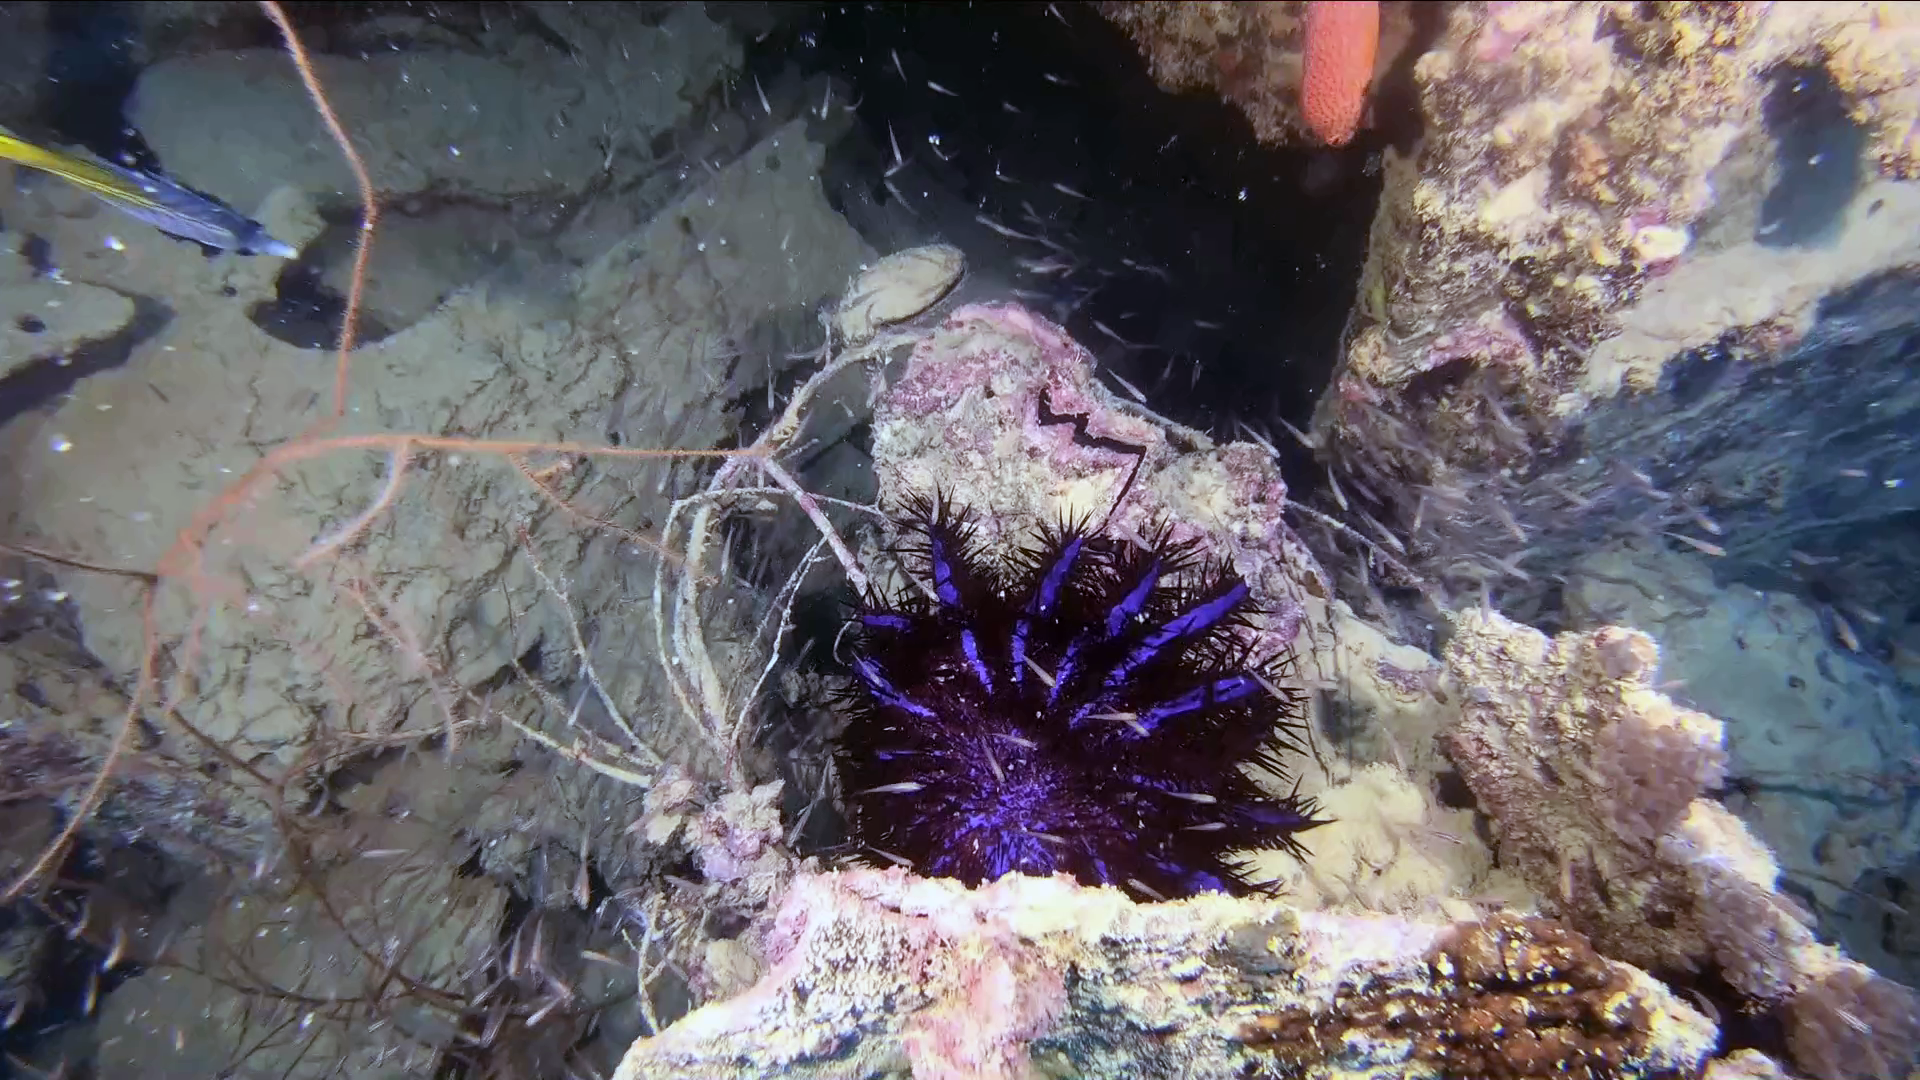 Stella Corona di Spine - Acanthaster planci - Crown-of-thorns Starfish - intotheblue.it